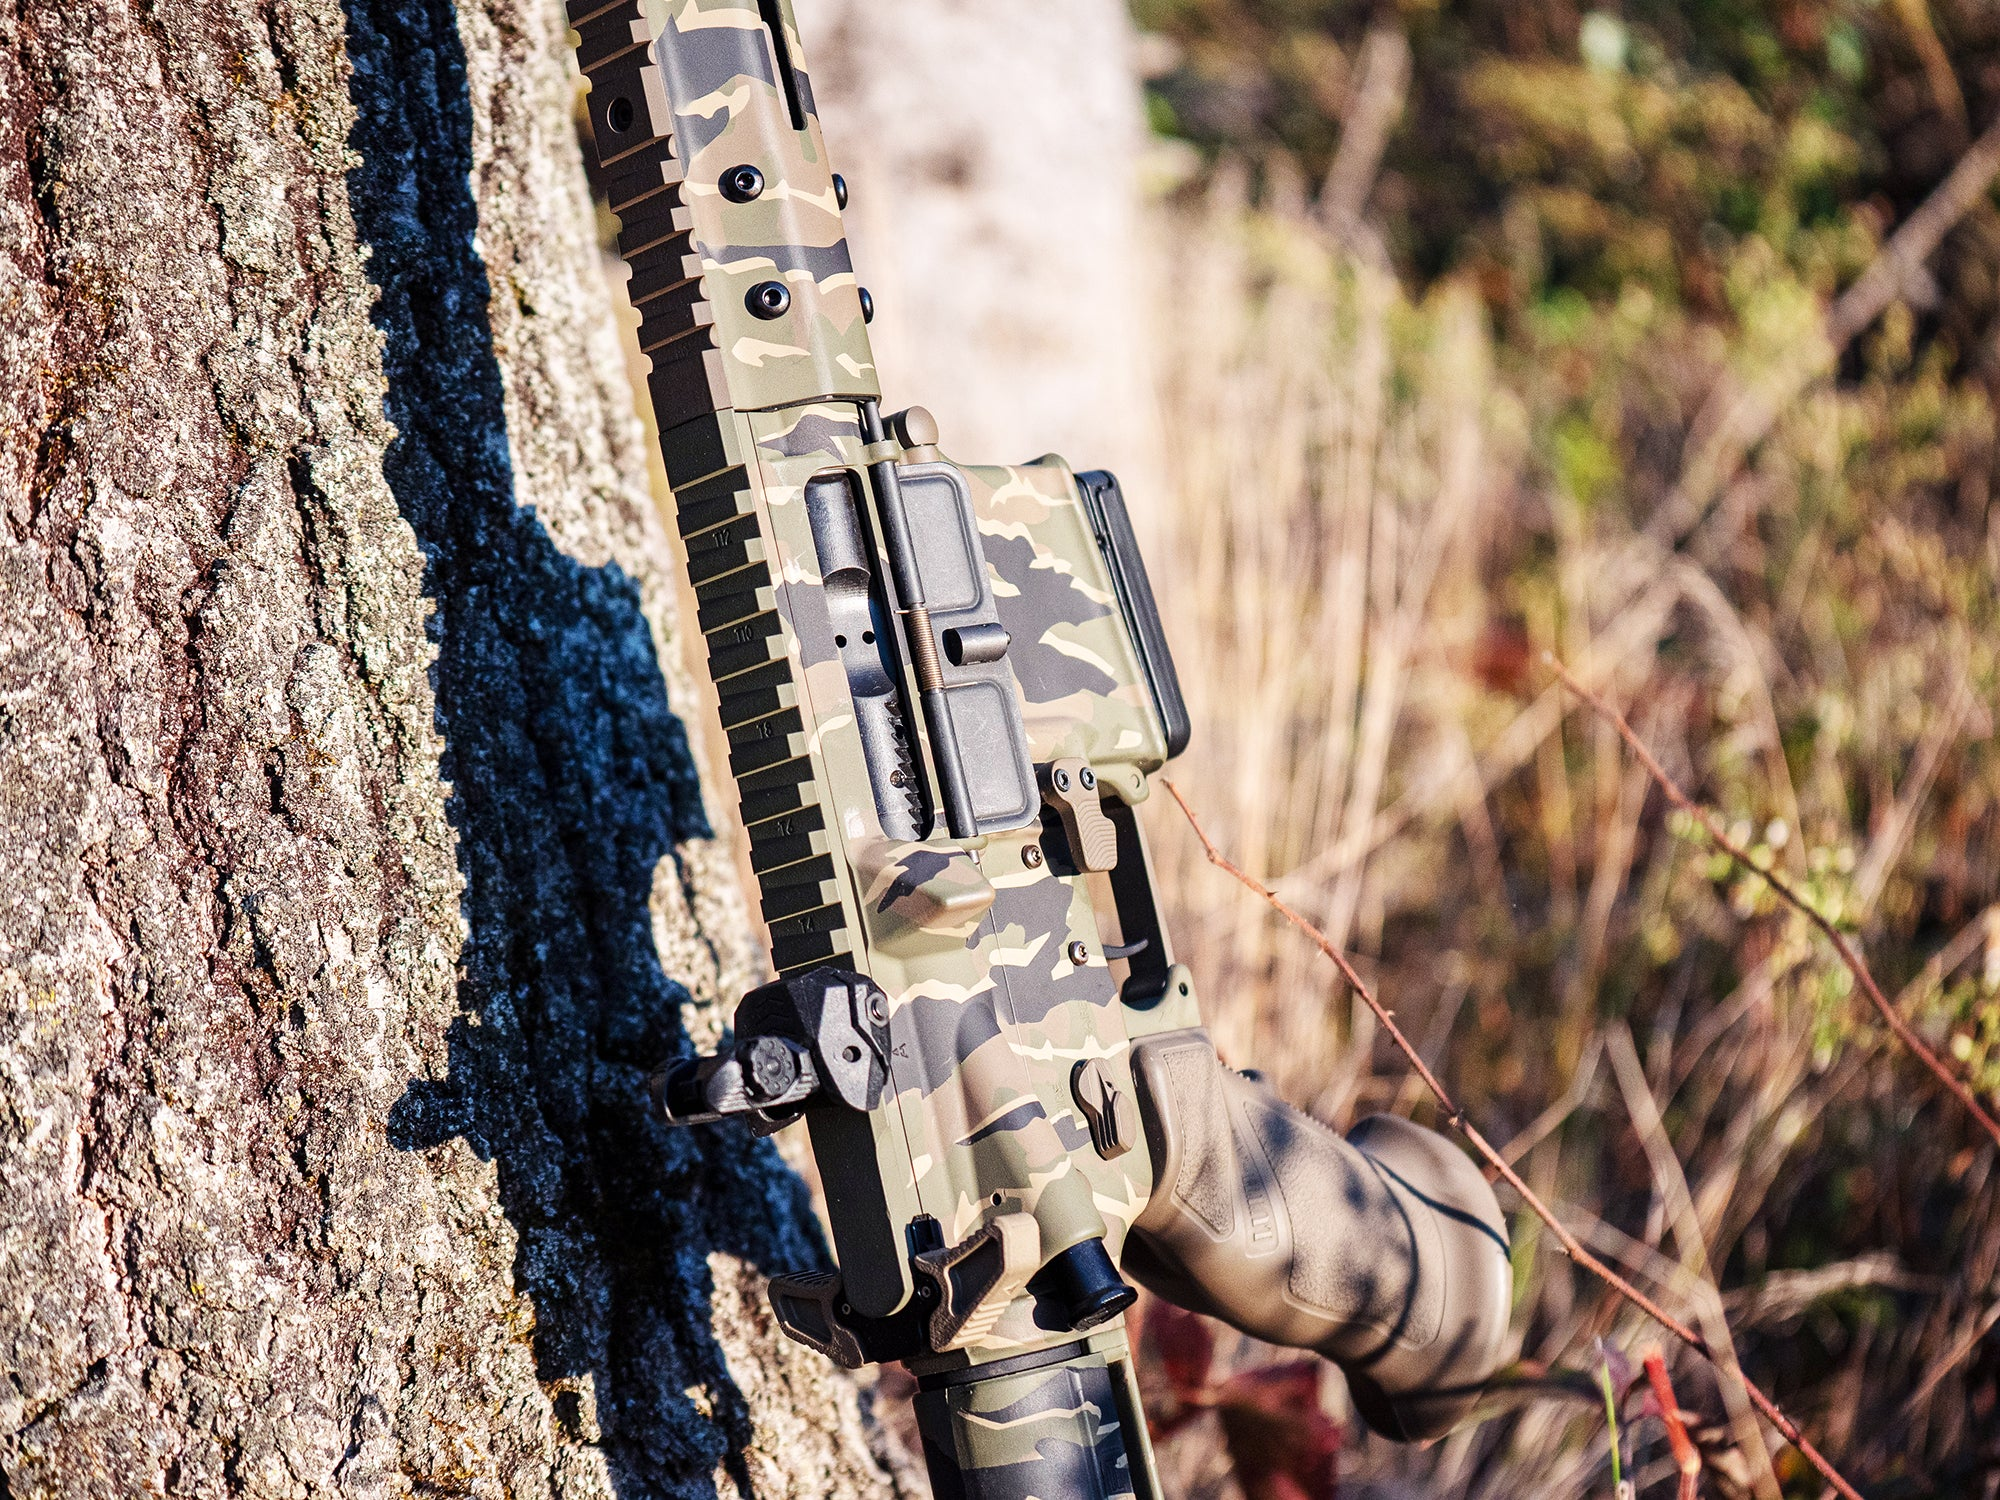 Trouble Shooter: The 450 Bushmaster 'Hunter' Build